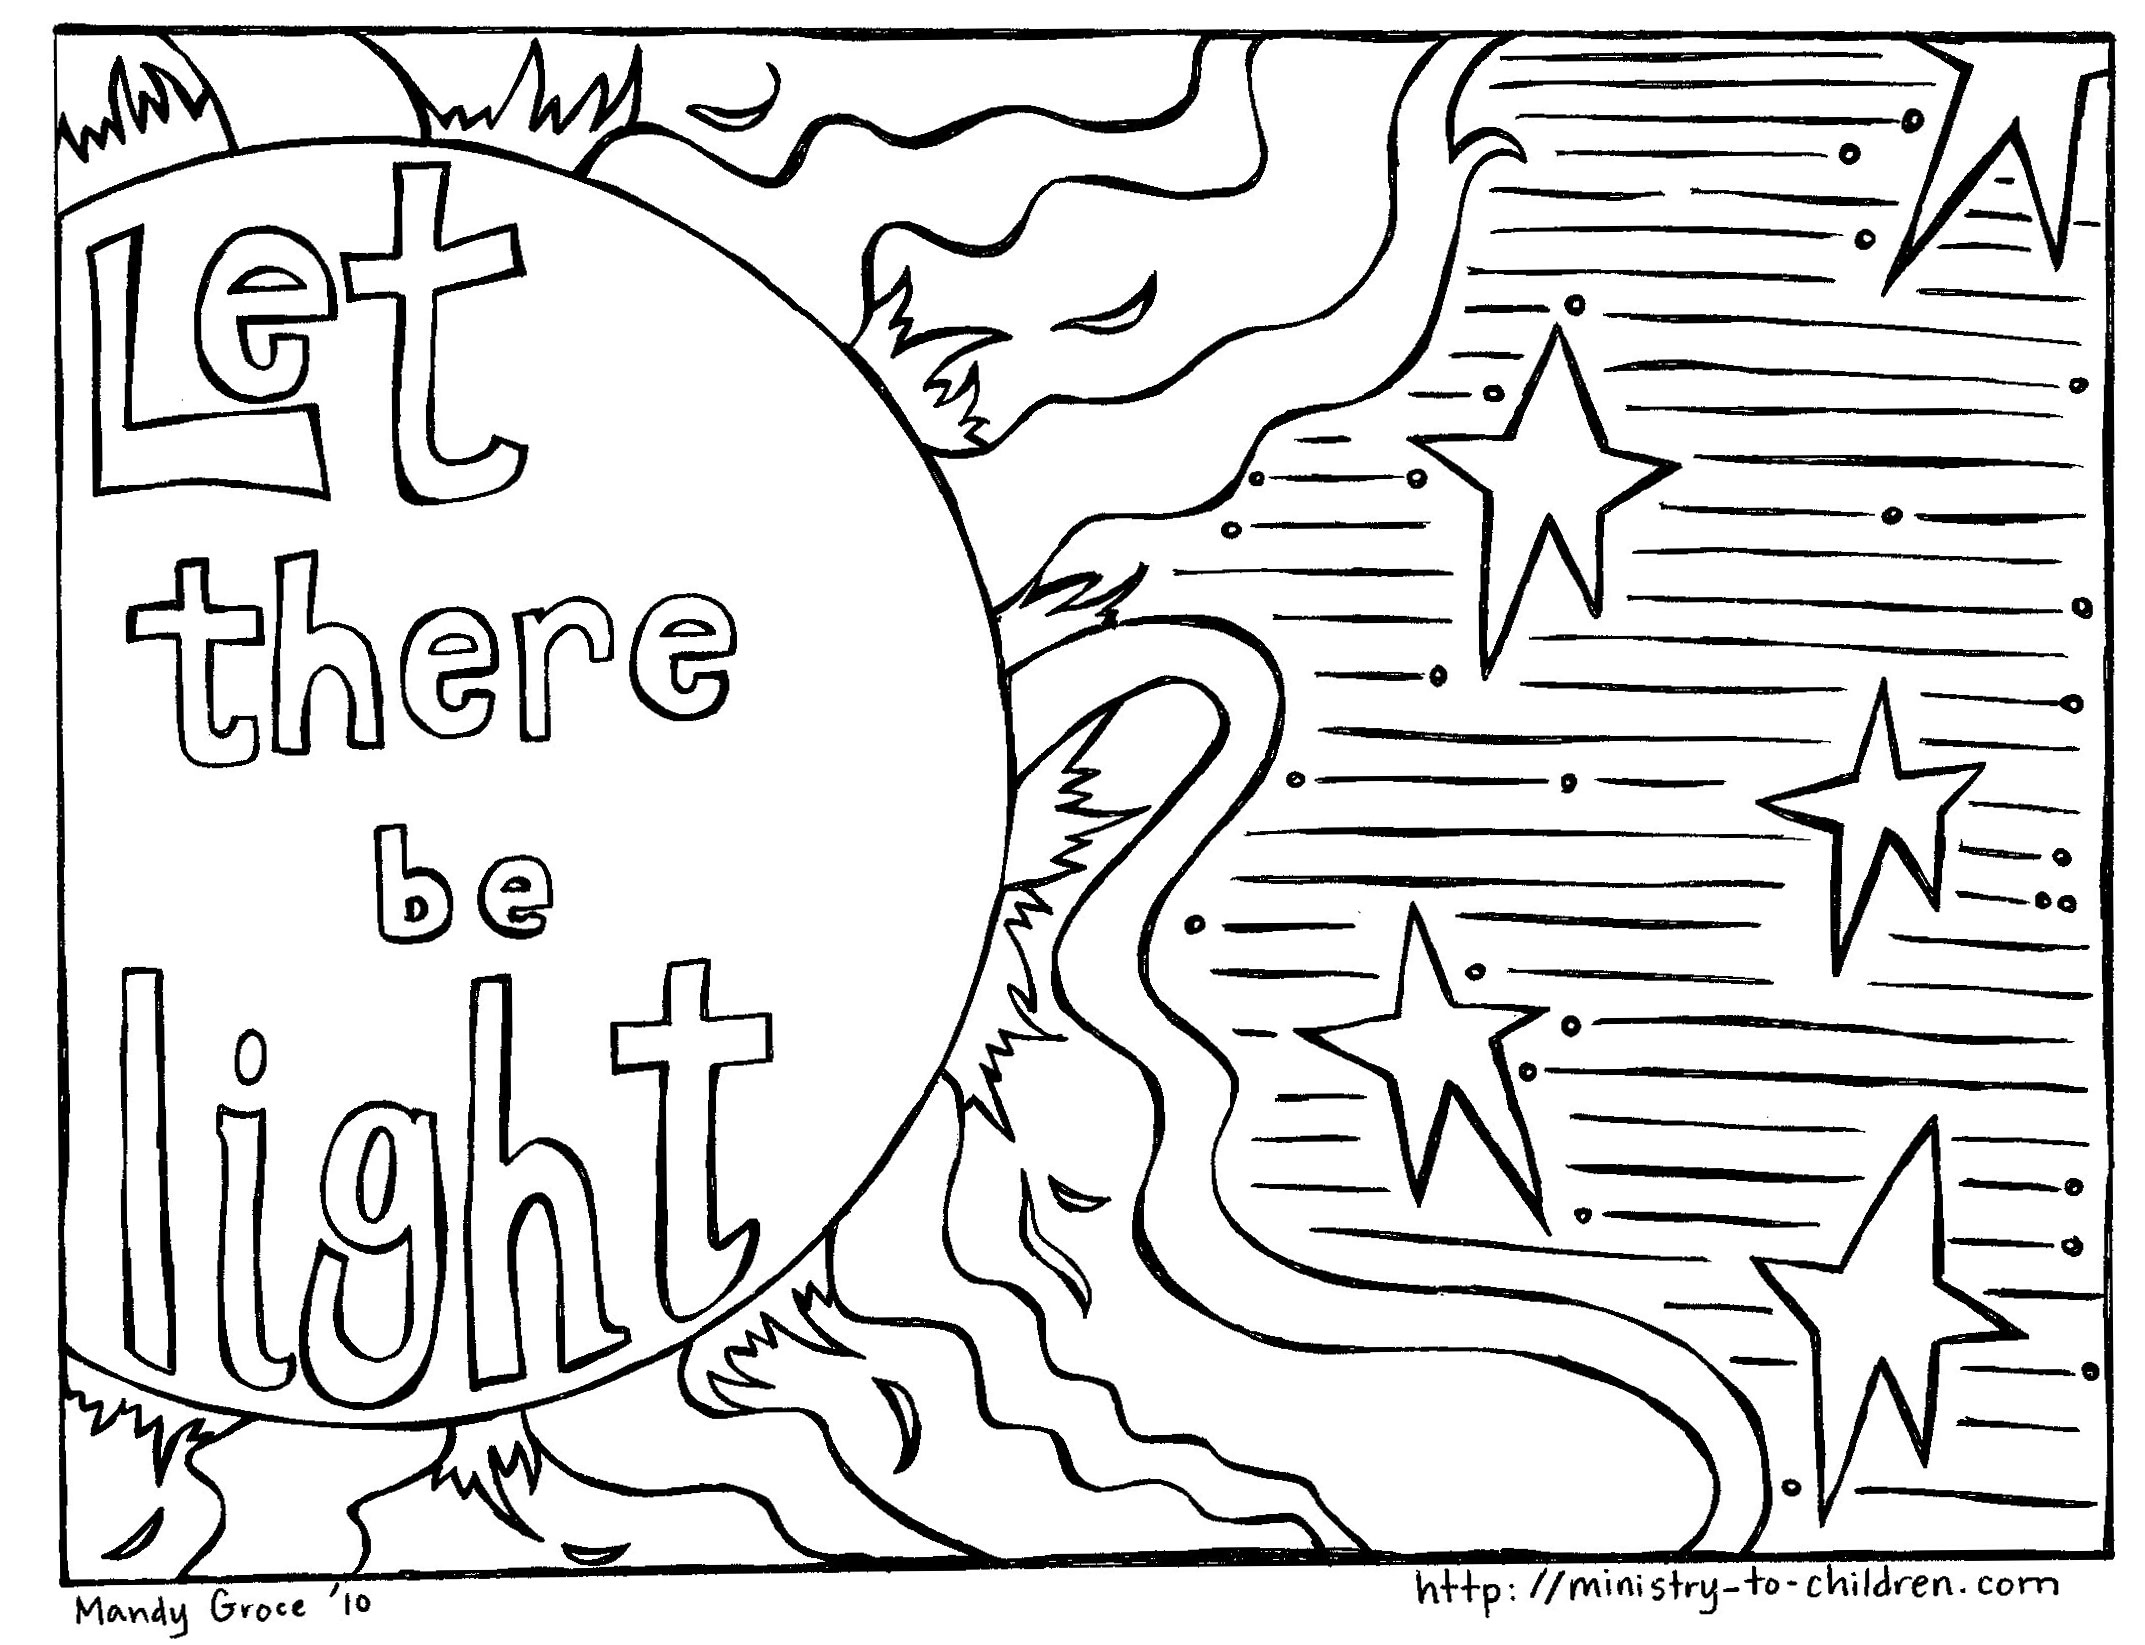 2145x1645 Odd Let Your Light Shine Coloring Page Creation Pages With God